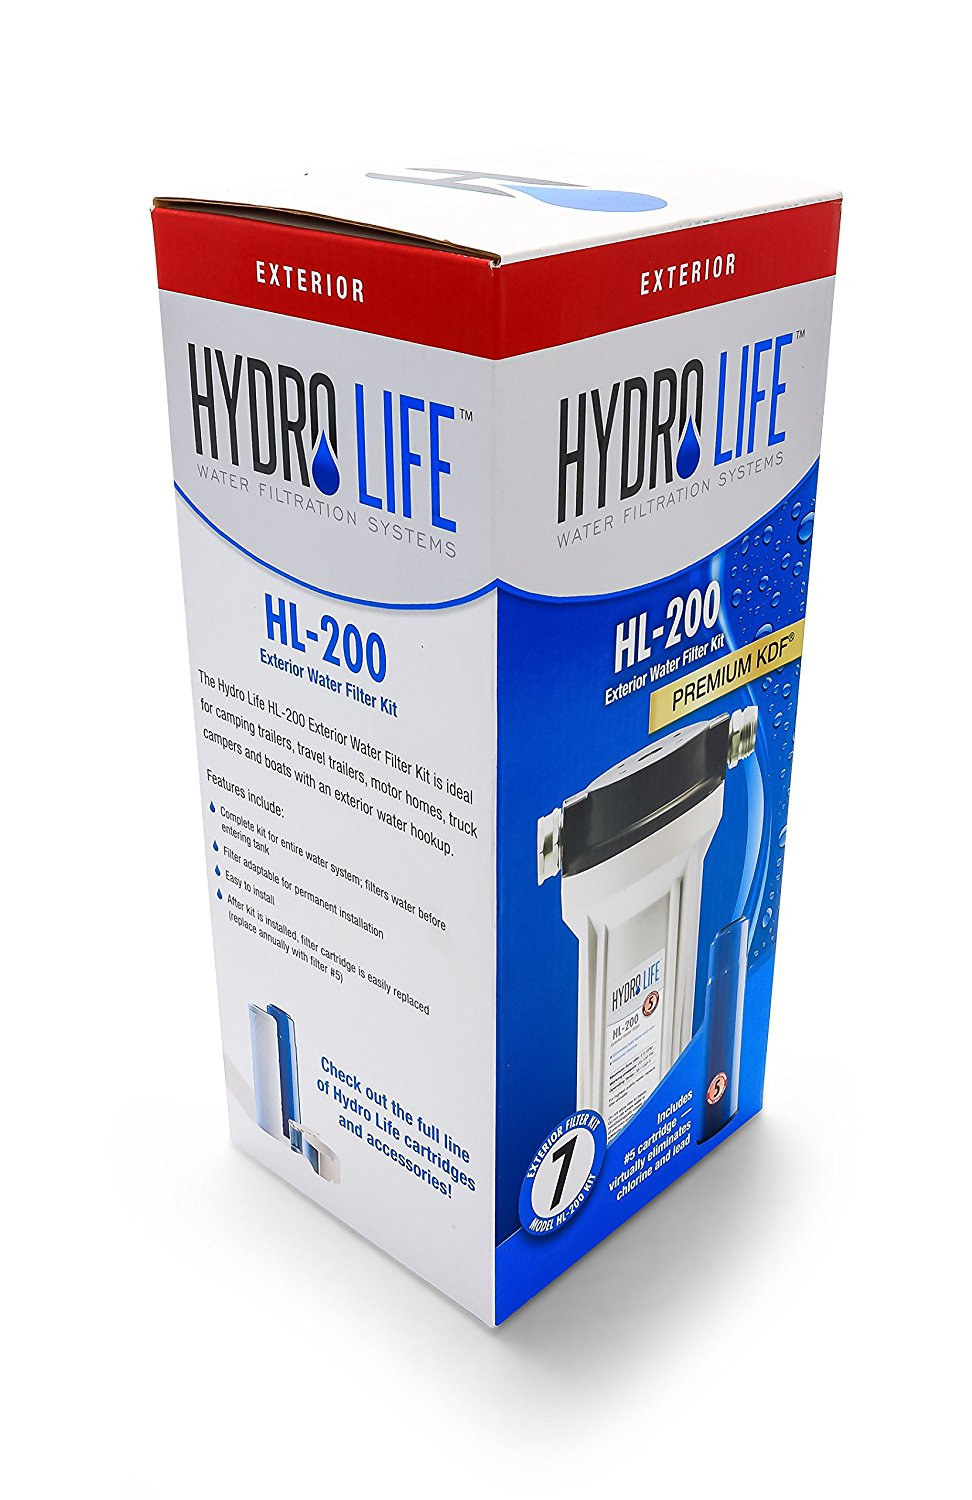 Hydro Life HL-200 Exterior Water Filter Kit 52141